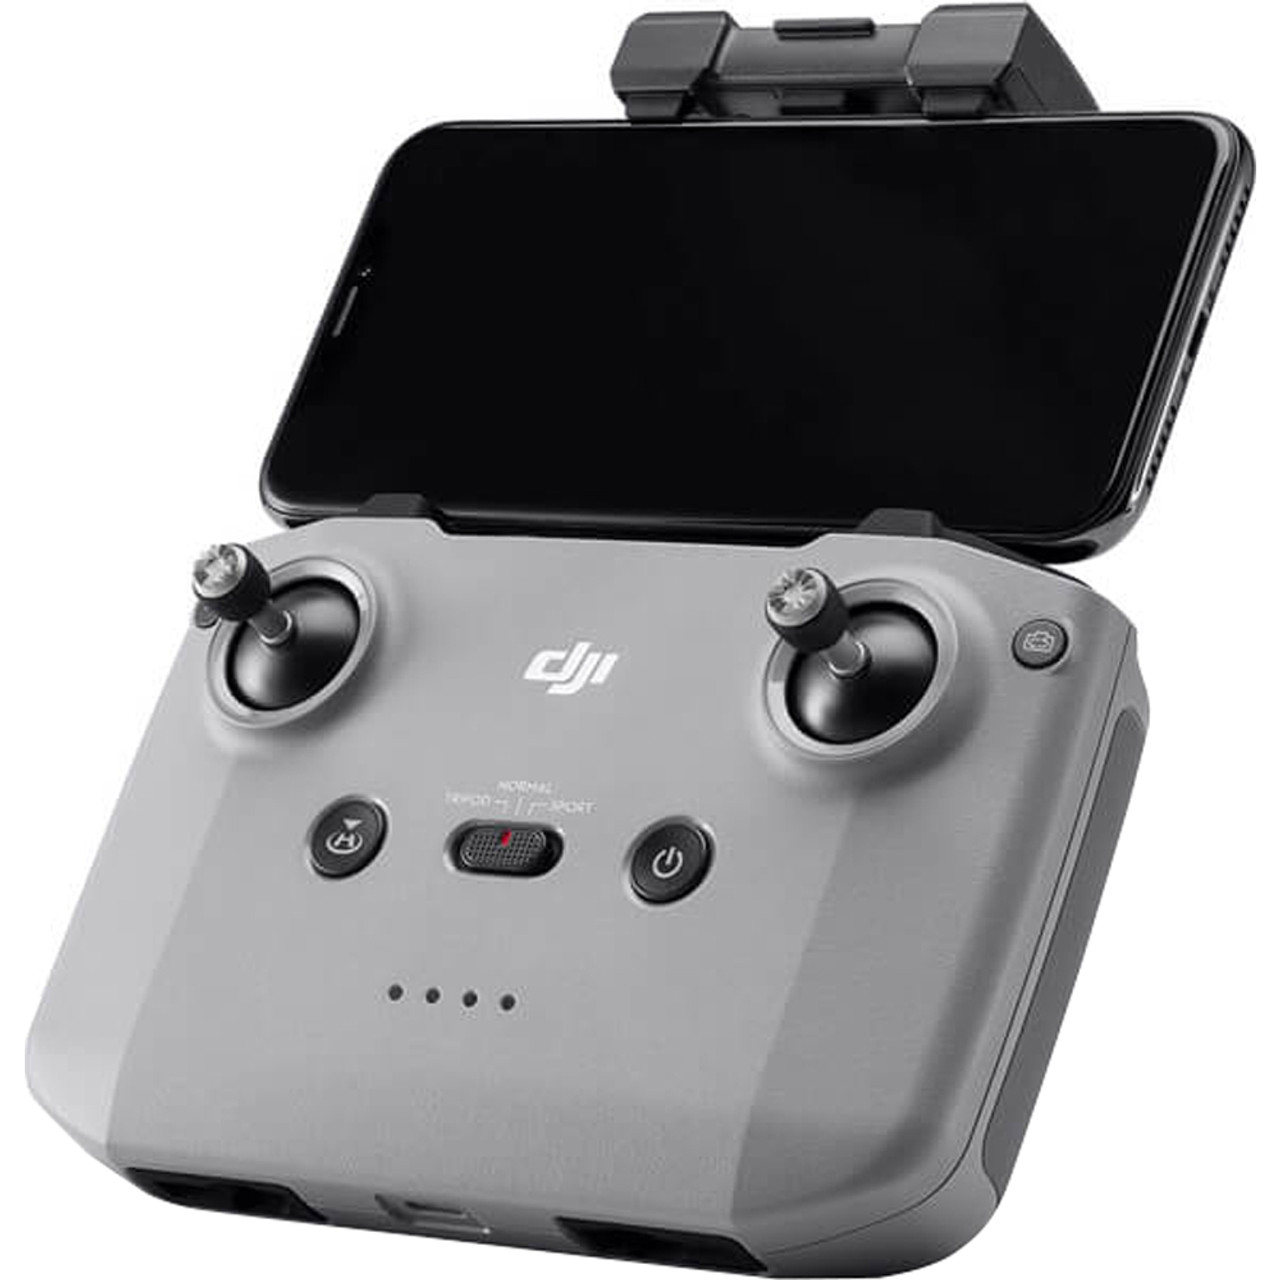 DJI Mavic Air 2 Drone Quadcopter Fly More Combo - Renewed With One Year Warranty